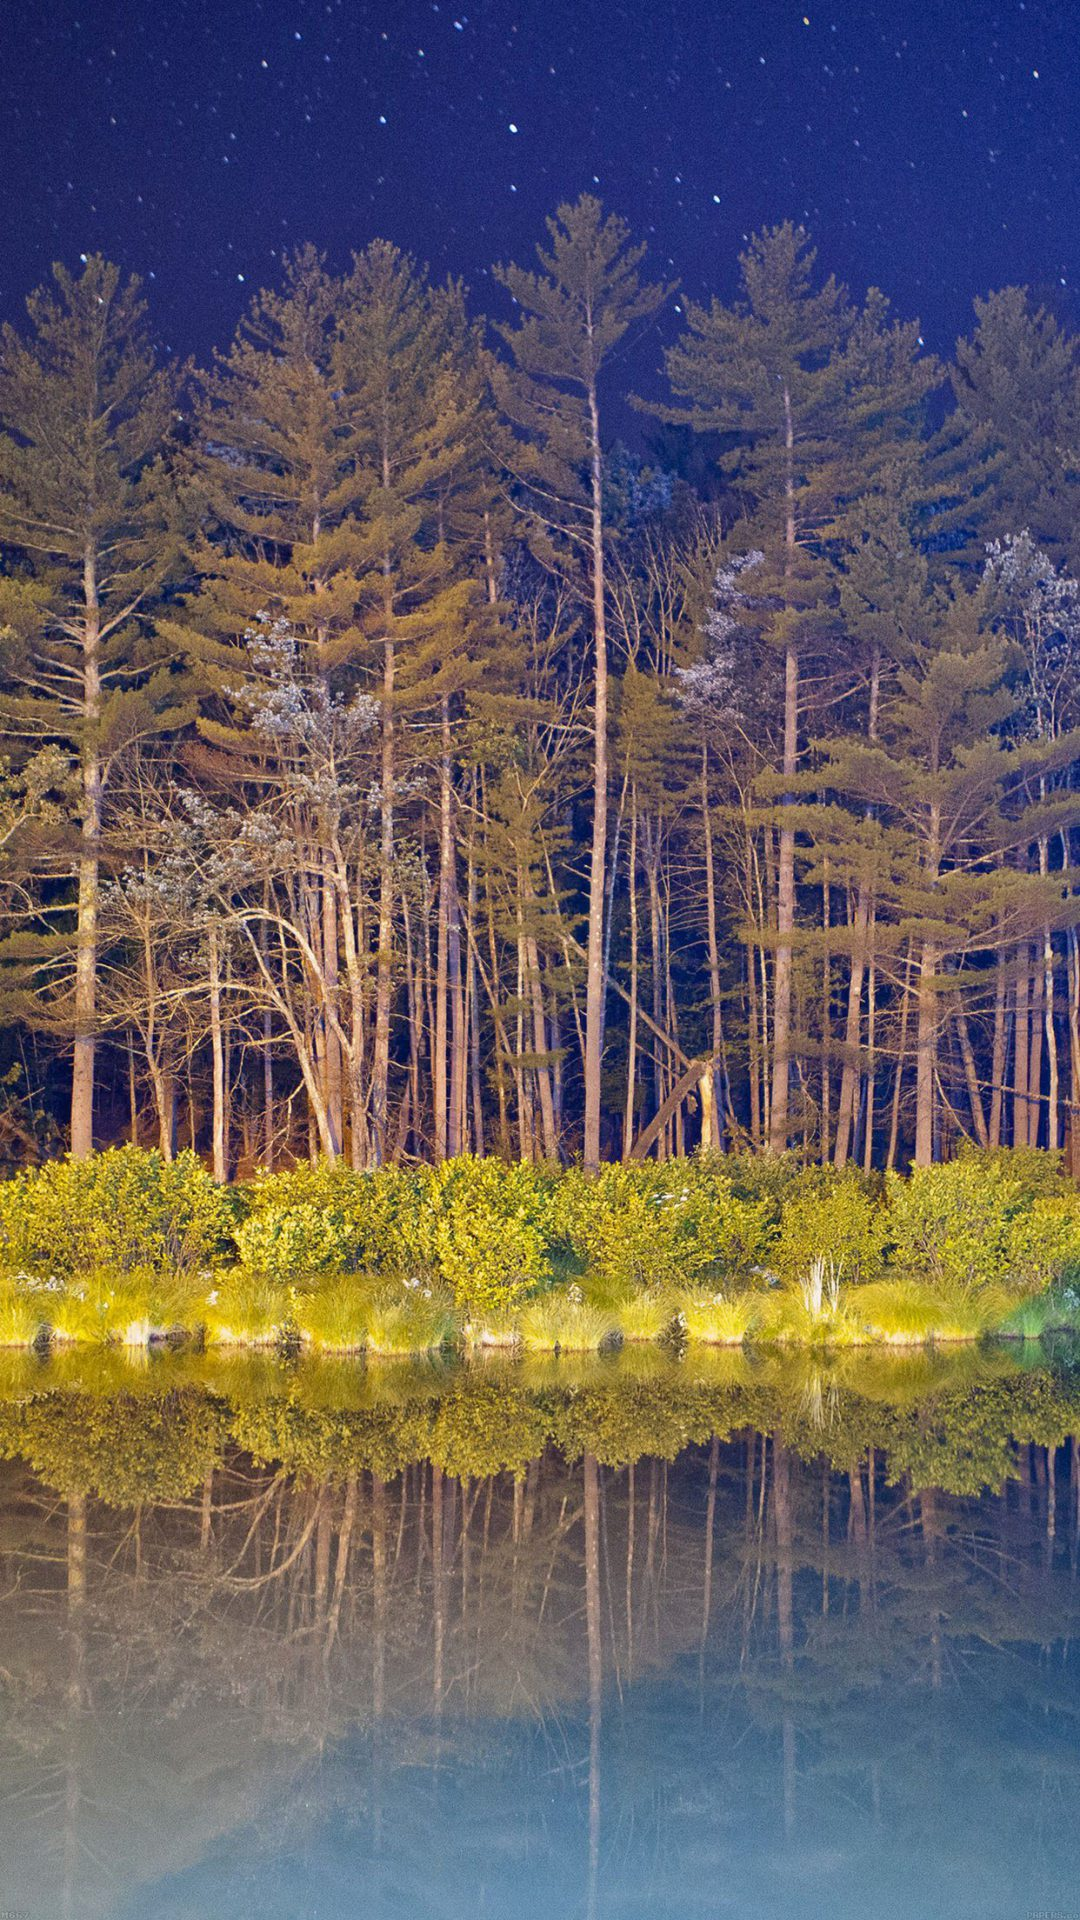 Night Wood With Lake Nature